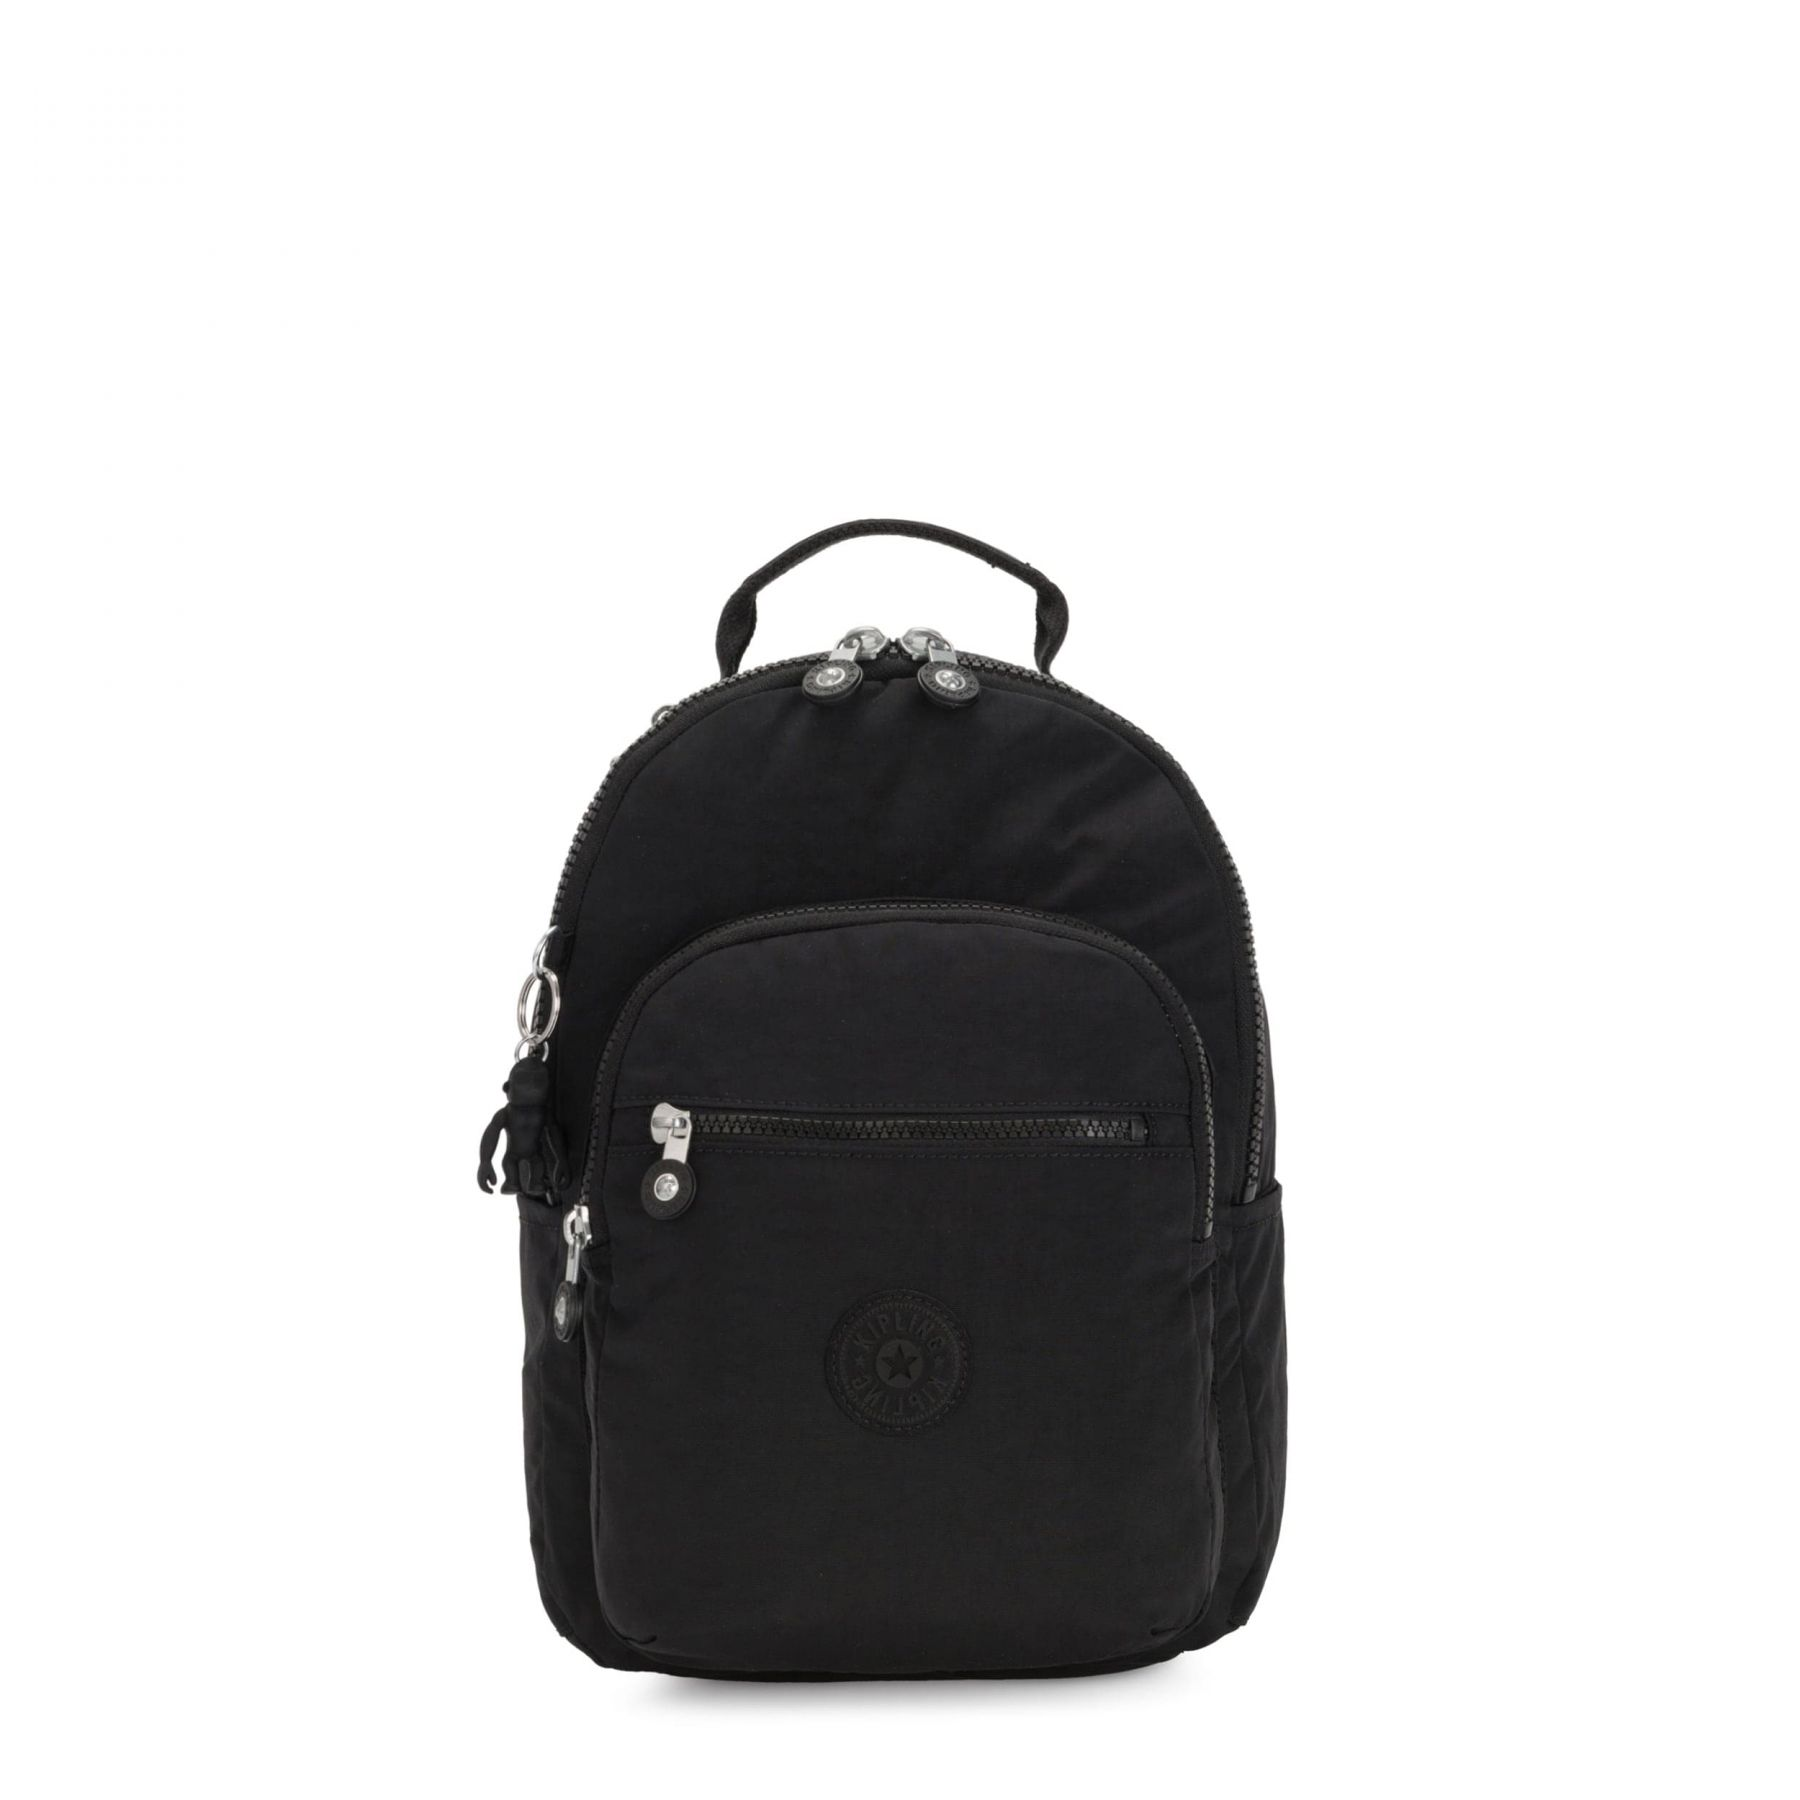 SEOUL S Latest Backpacks by Kipling - Front view